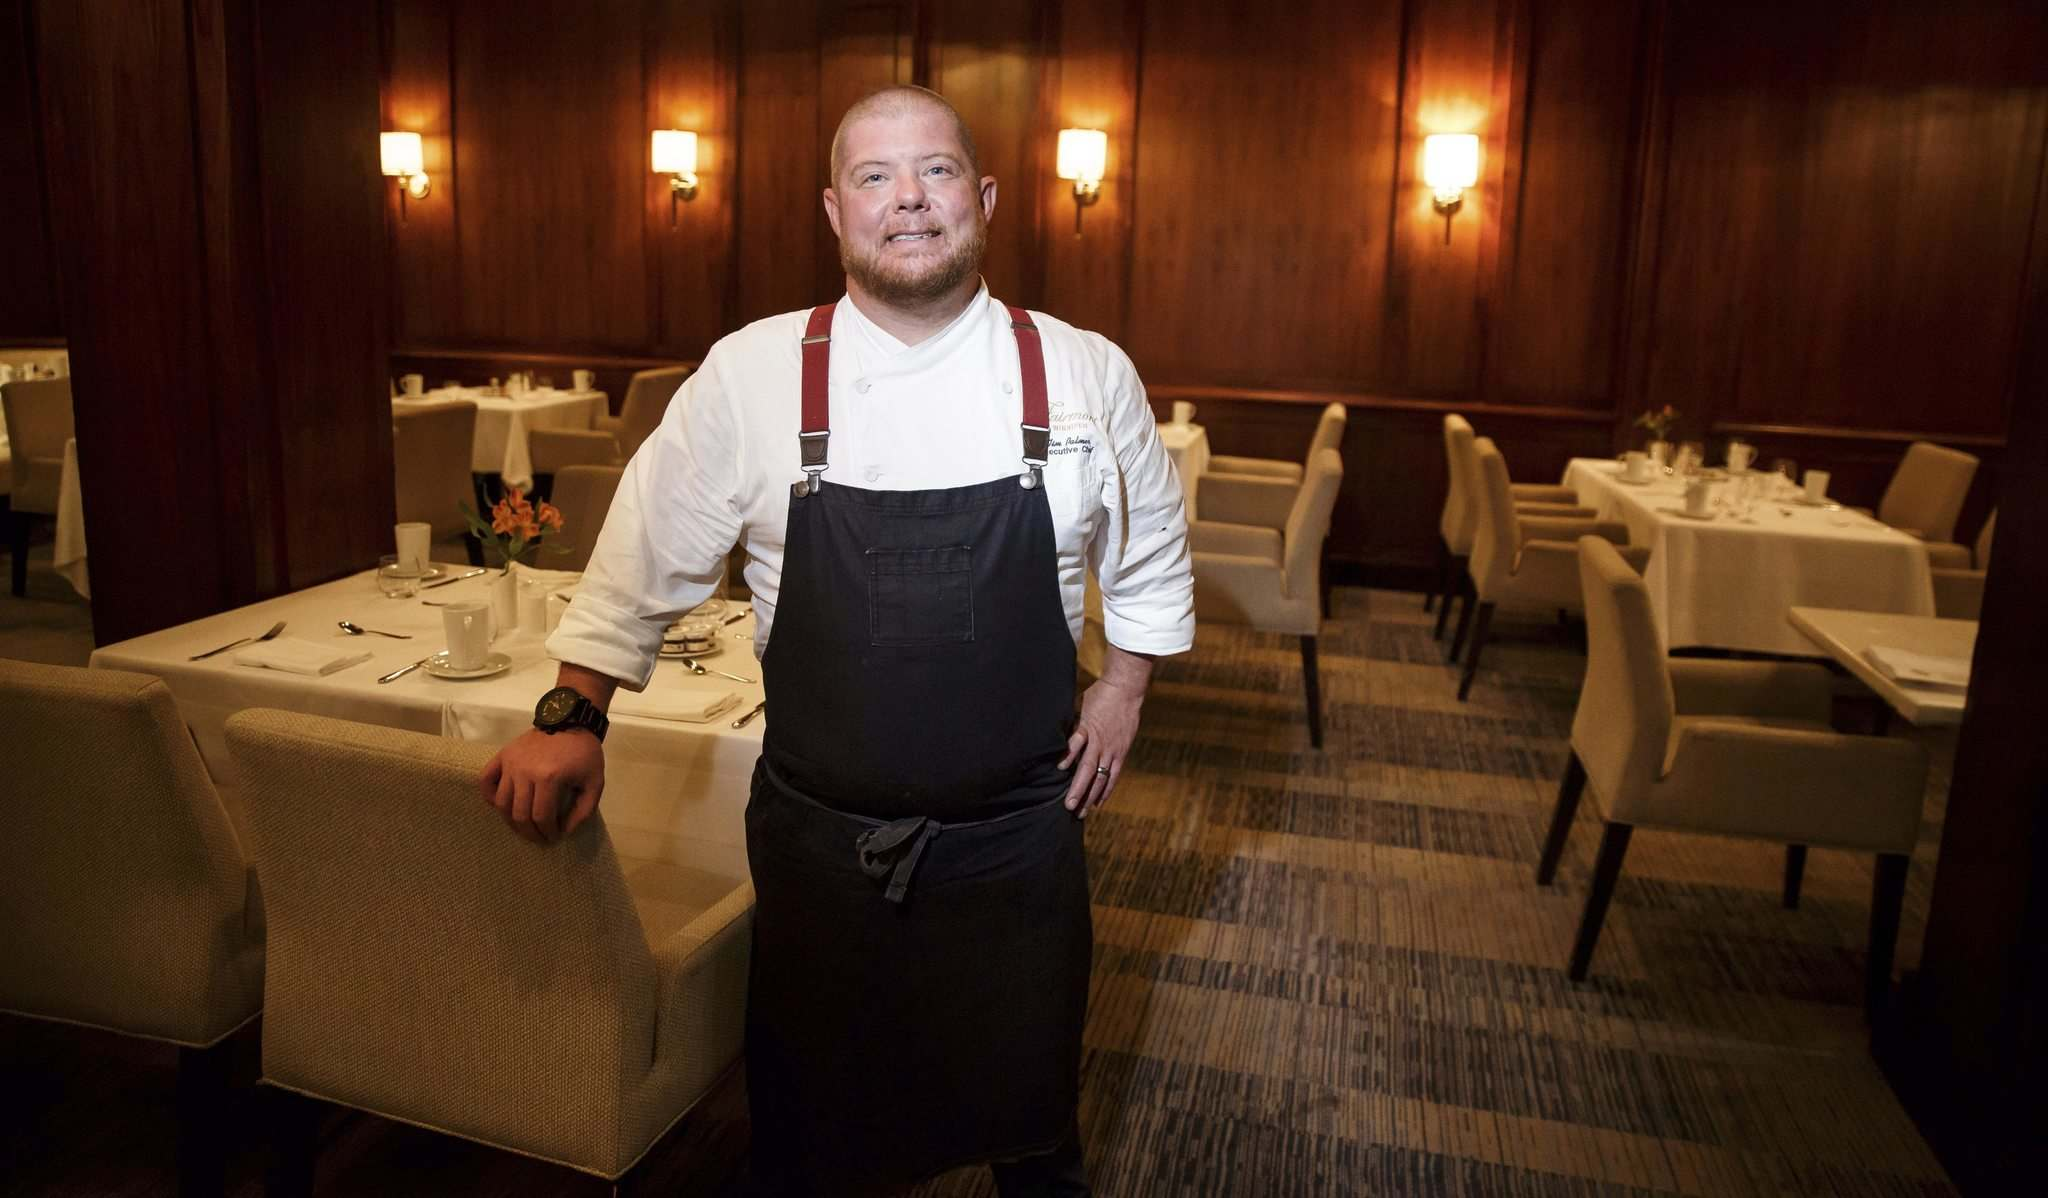 MIKE DEAL / WINNIPEG FREE PRESS</p><p>Tim Palmer, executive chef at the Fairmont Winnipeg&rsquo;s VG Restaurant, has worked to modernize the restaurant&rsquo;s menu.</p></p>